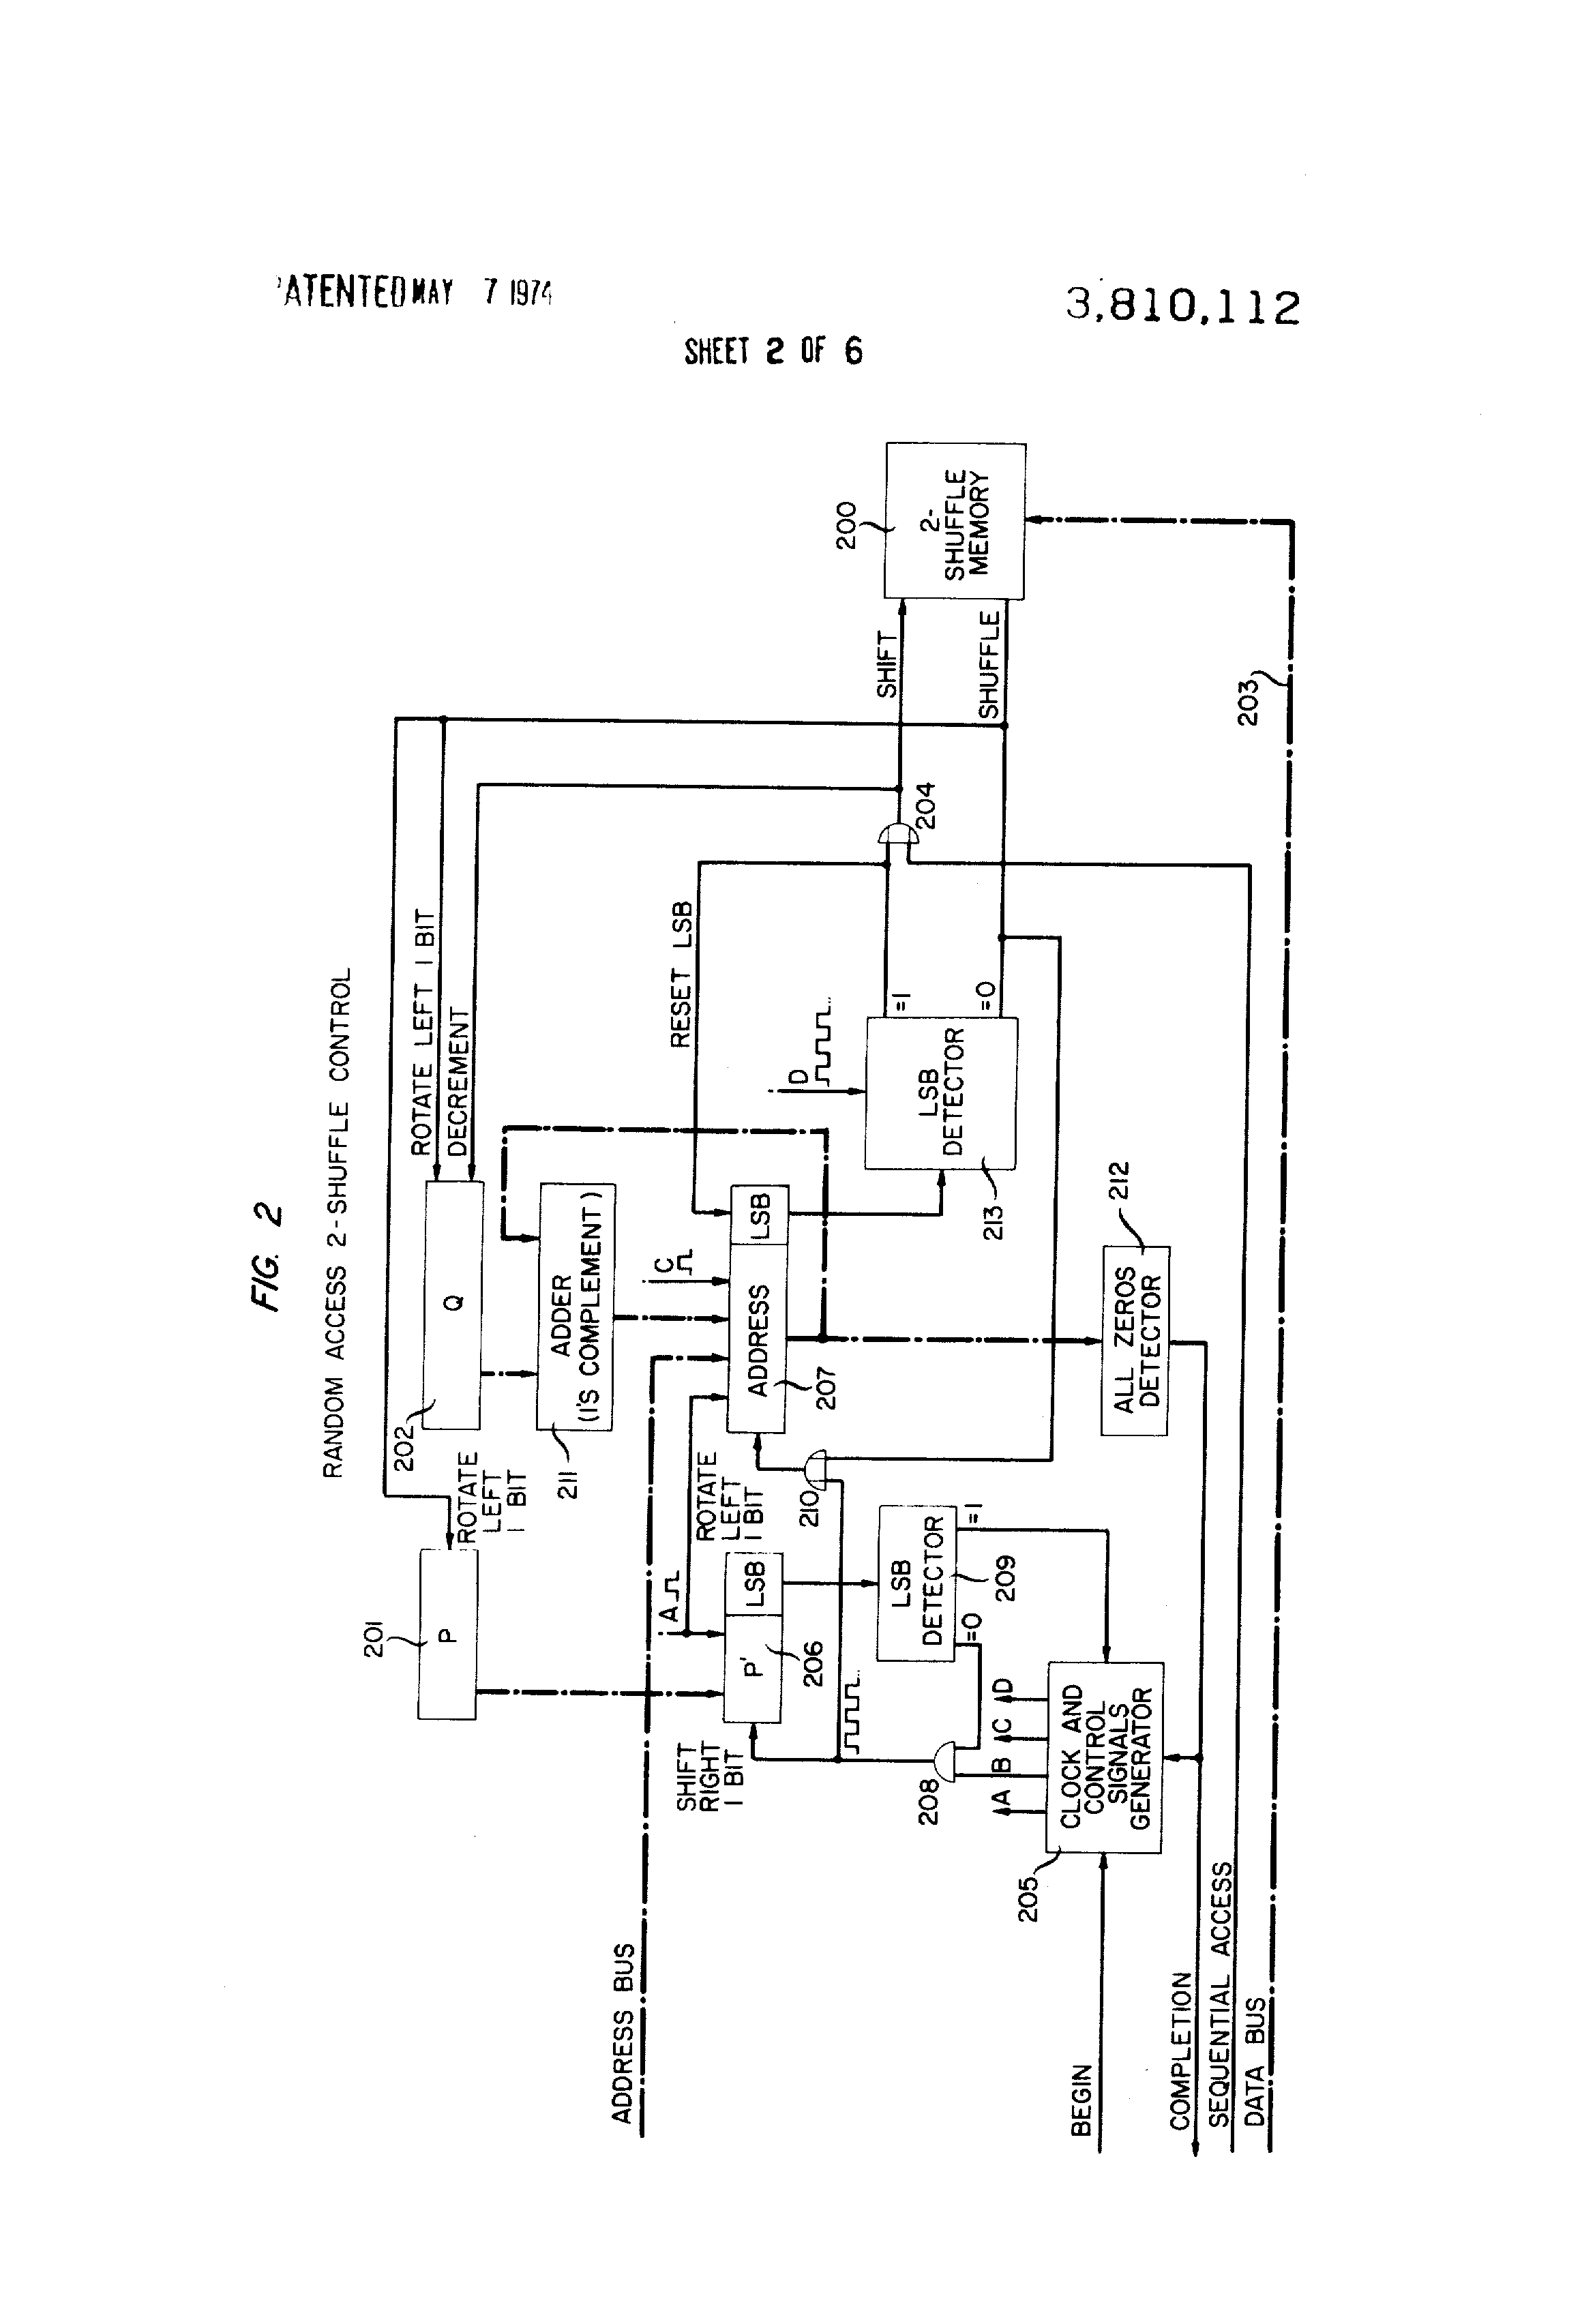 Patent Us3810112 Shift Shuffle Memory System With Rapid Sequential Adder Circuit I Have Successfully Drawn 8 Bit Full Drawing